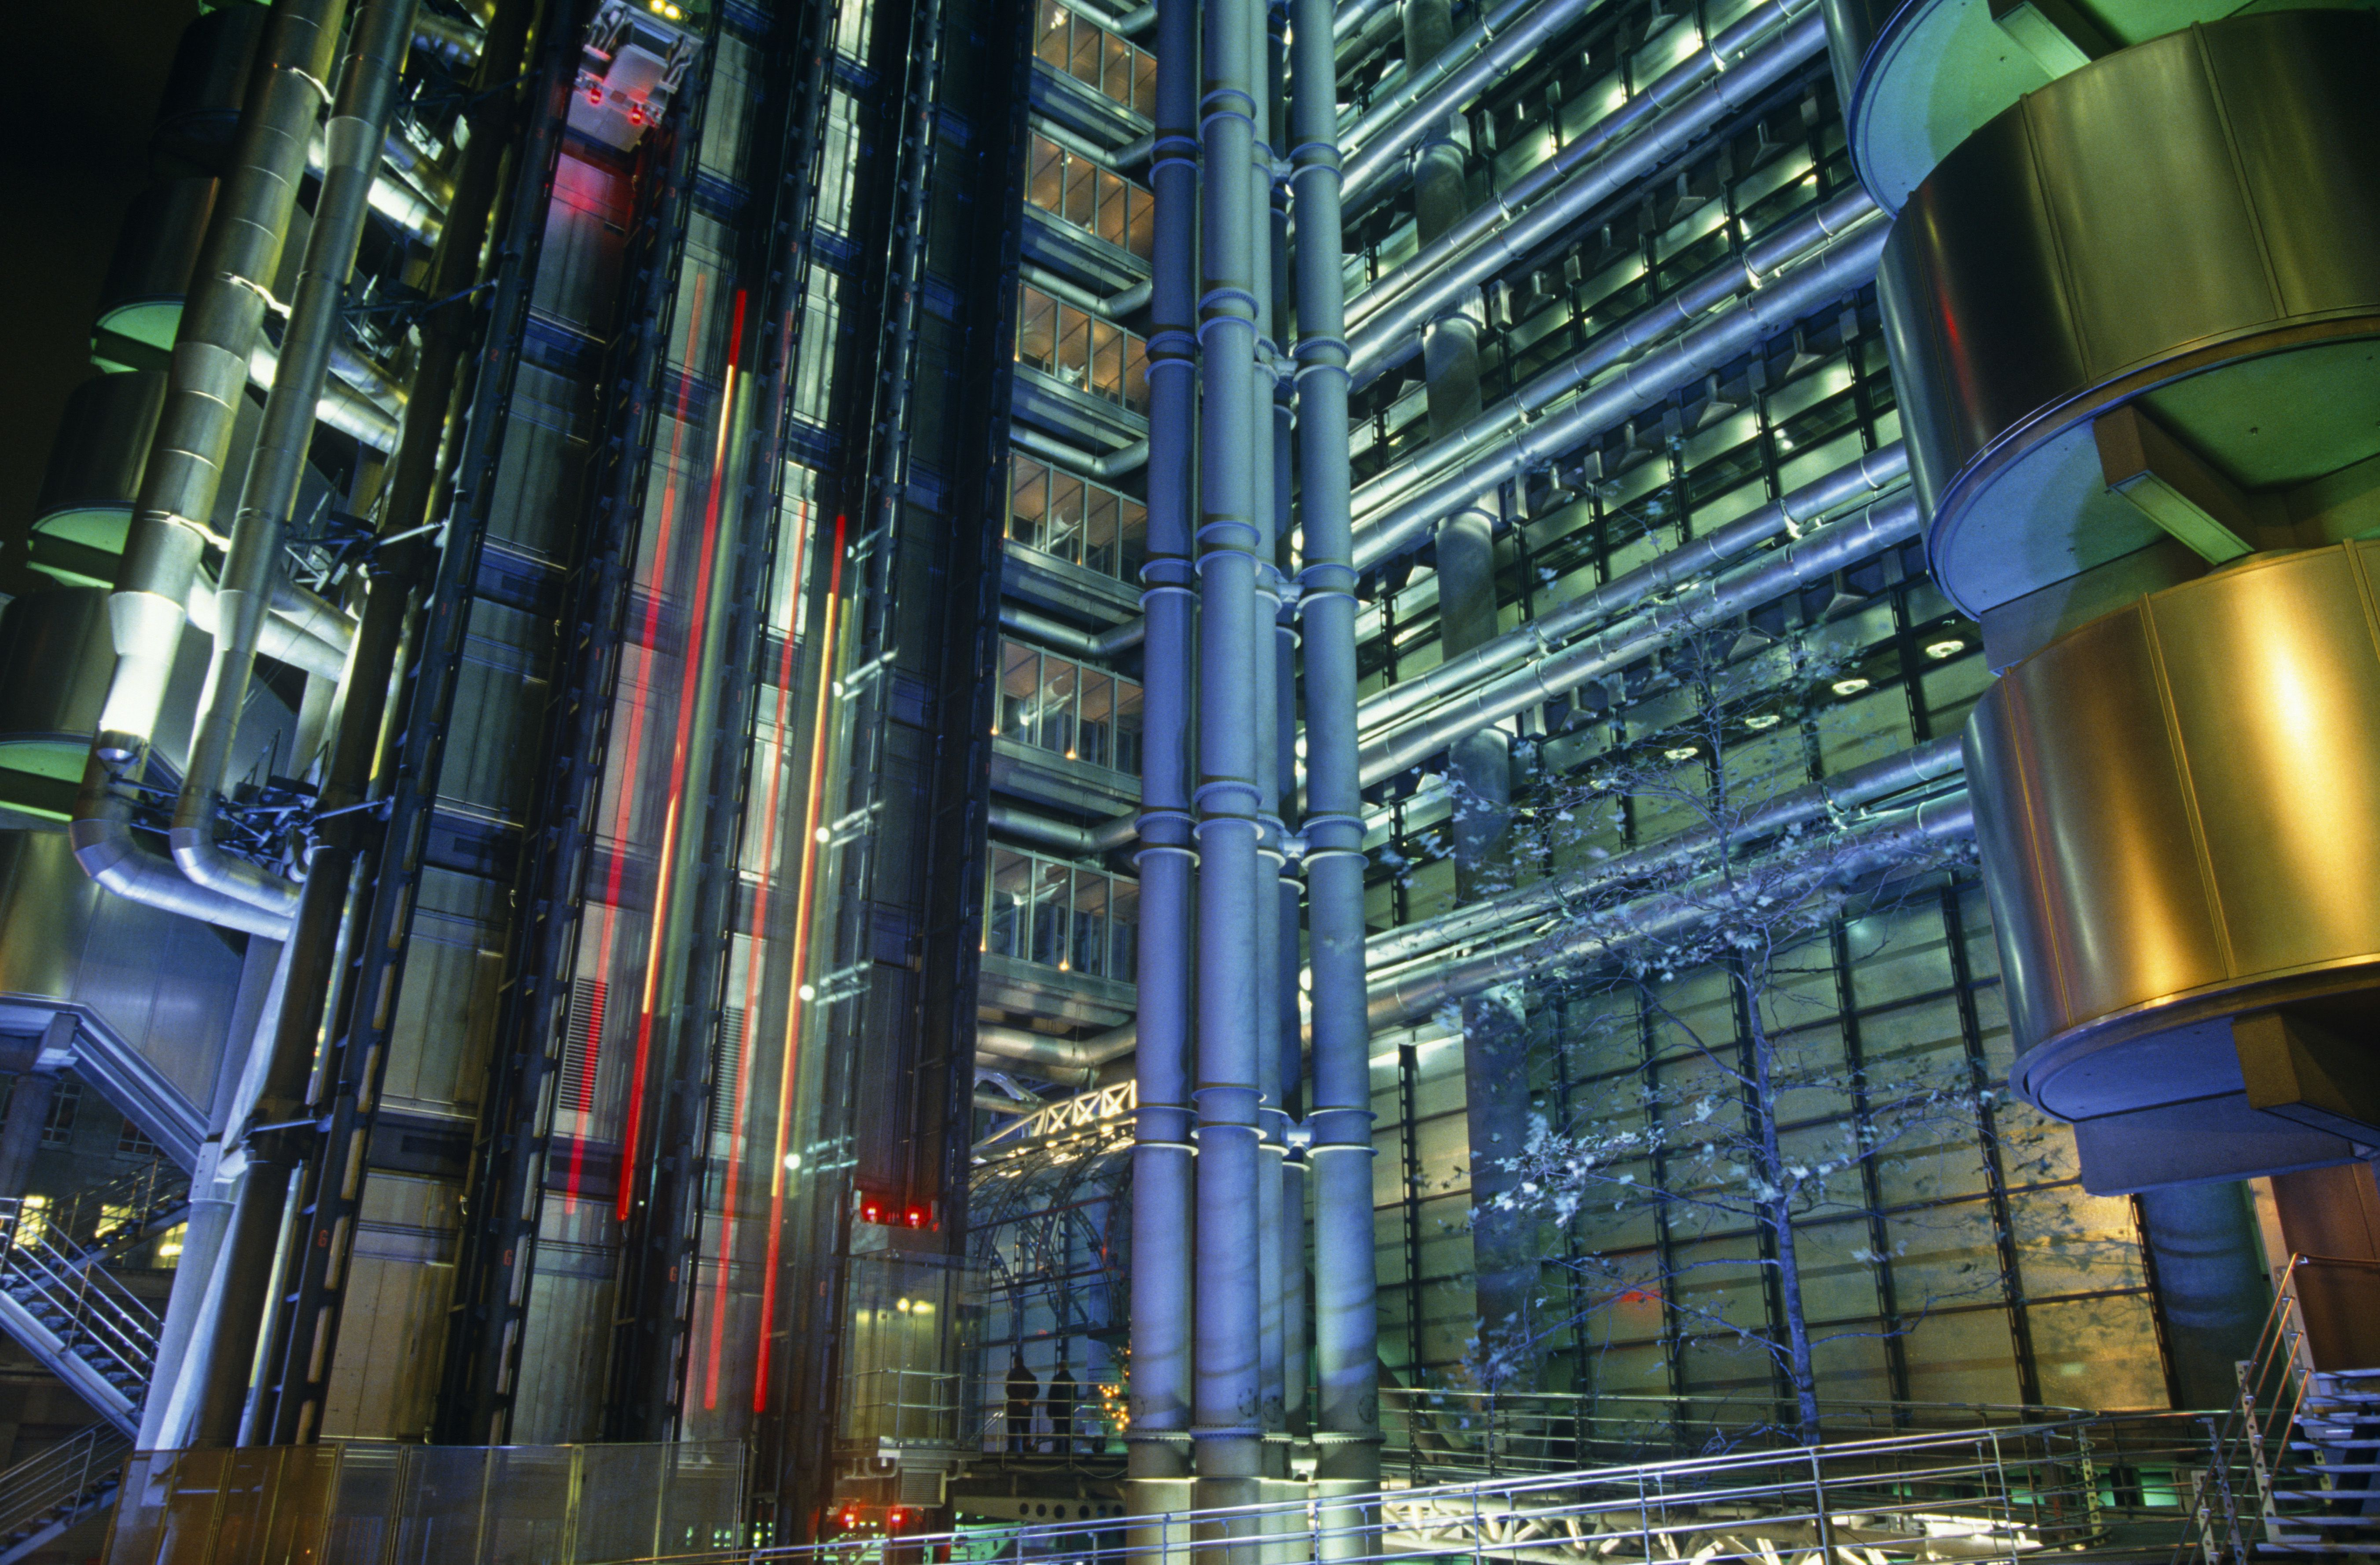 Exterior of Lloyds of London Building Designed by Sir Richard Rogers